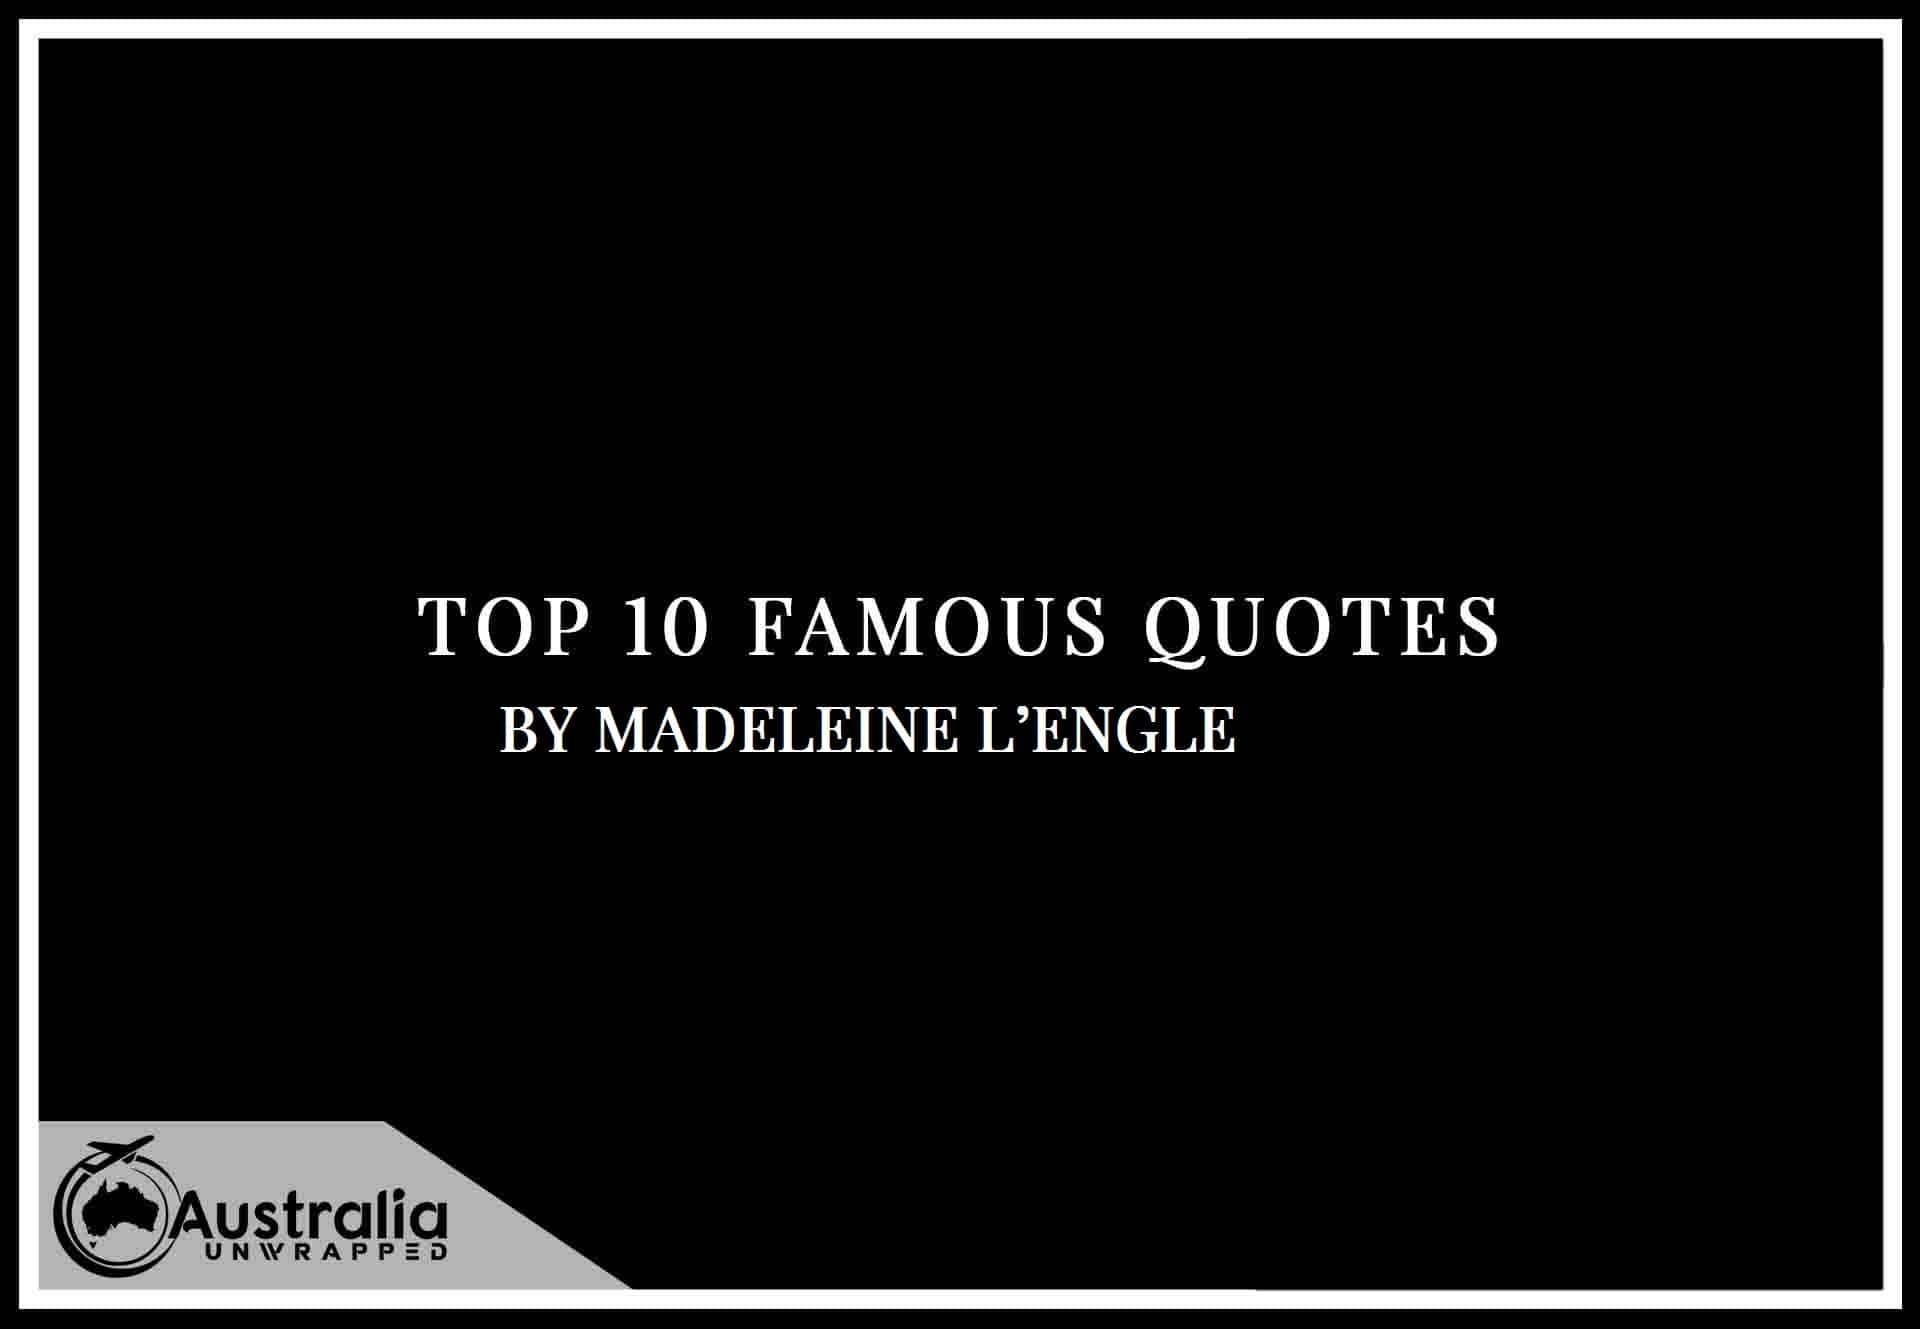 Madeleine L'Engle's Top 10 Popular and Famous Quotes